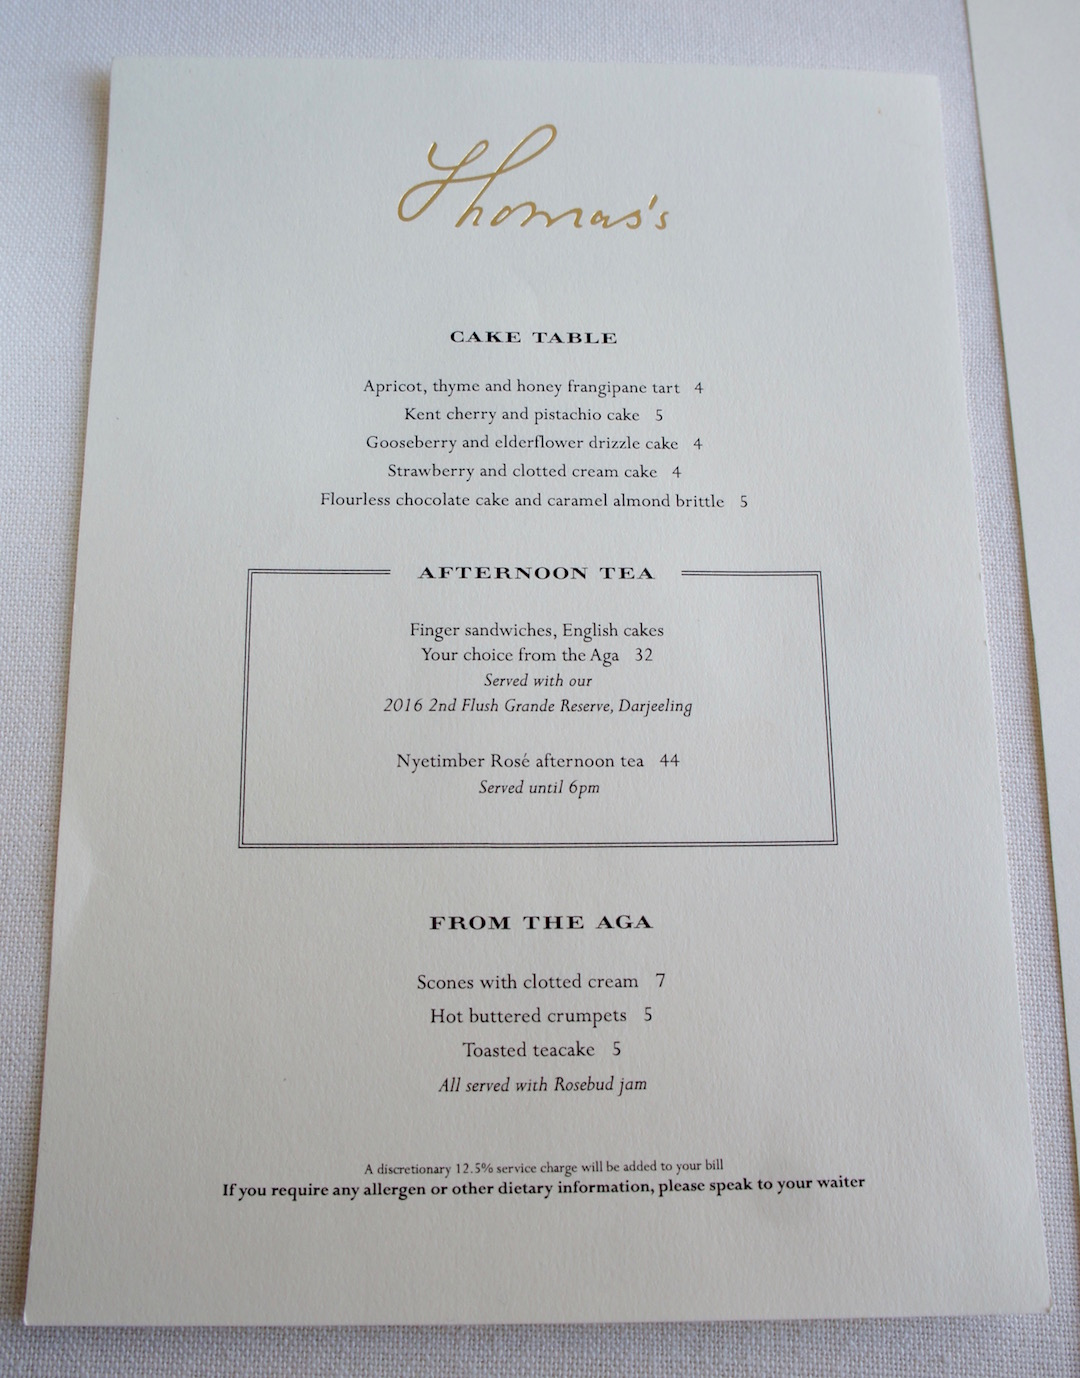 Thomas's Cafe at Burberry